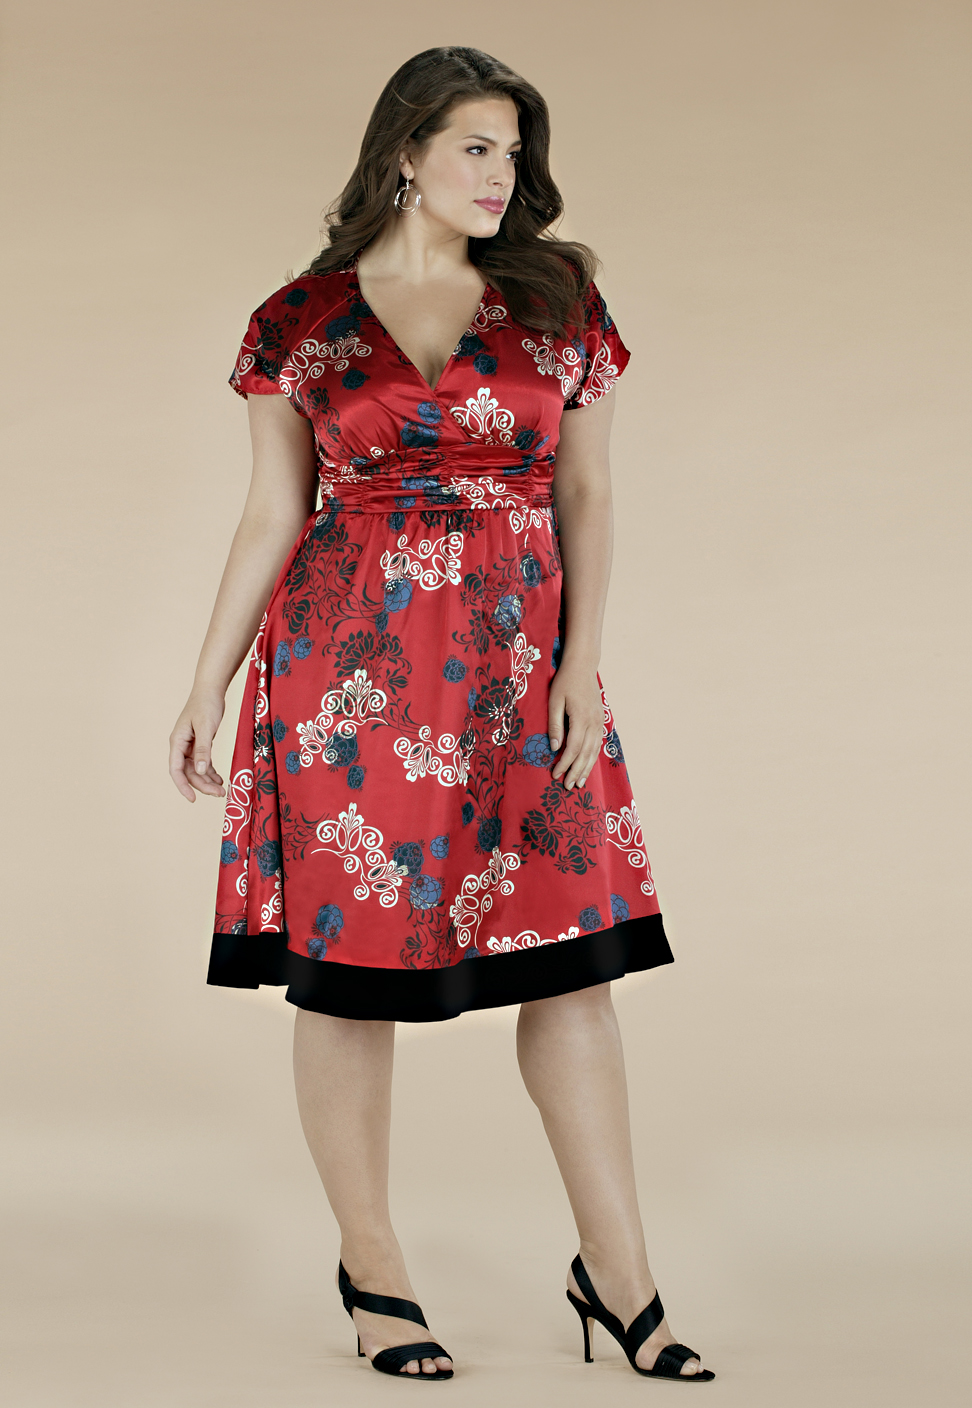 Cato Plus Size Fashion Catalog Cato Plus Size Fashion Stores